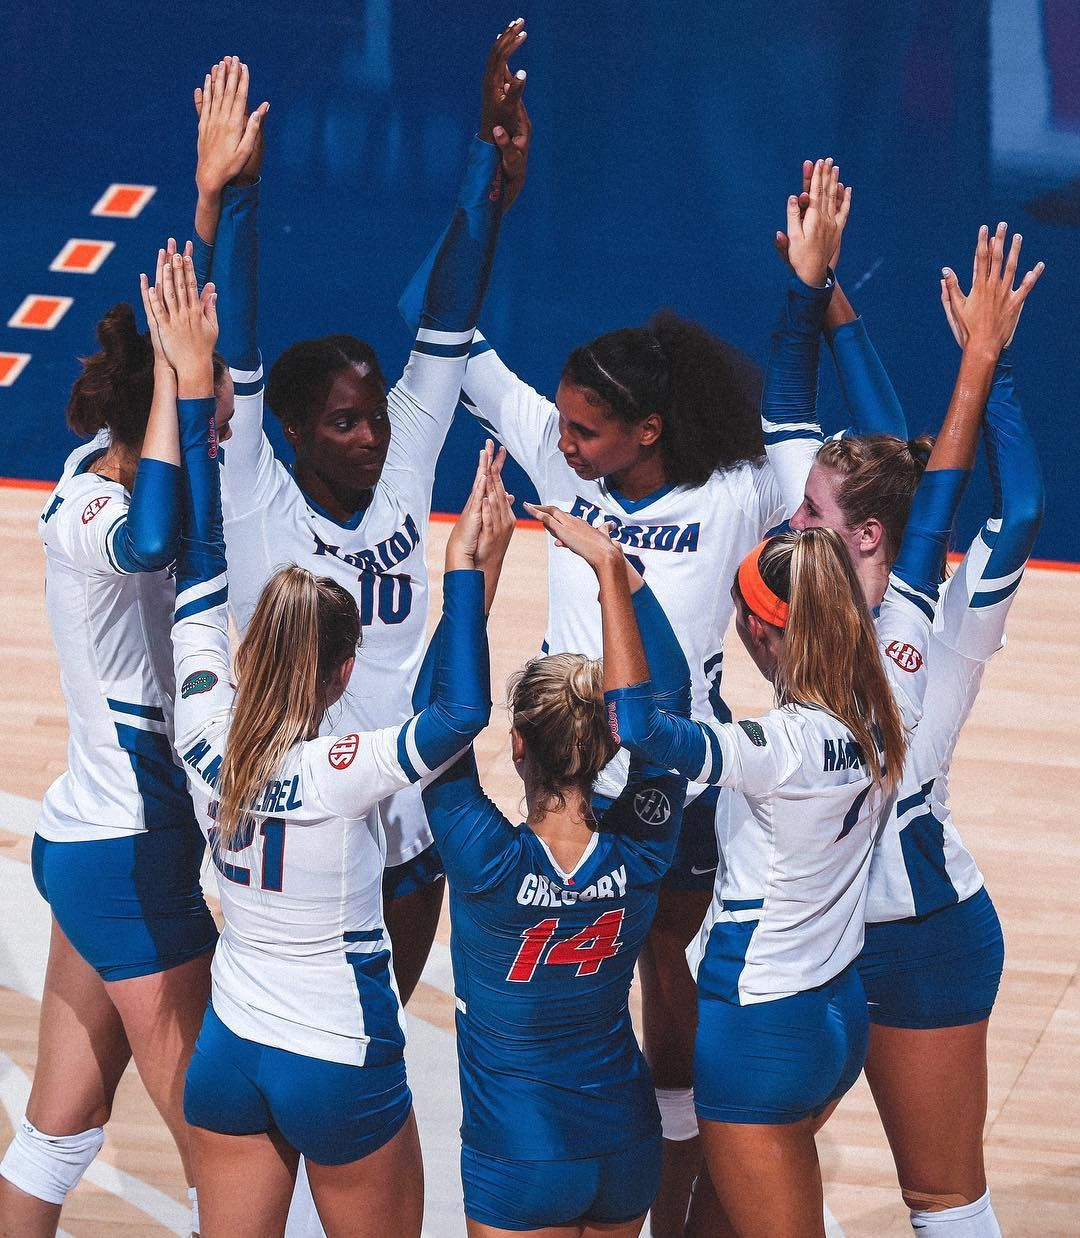 Let S Bounce Back This Weekend Gogators Female Volleyball Players Volleyball Training Volleyball Photos